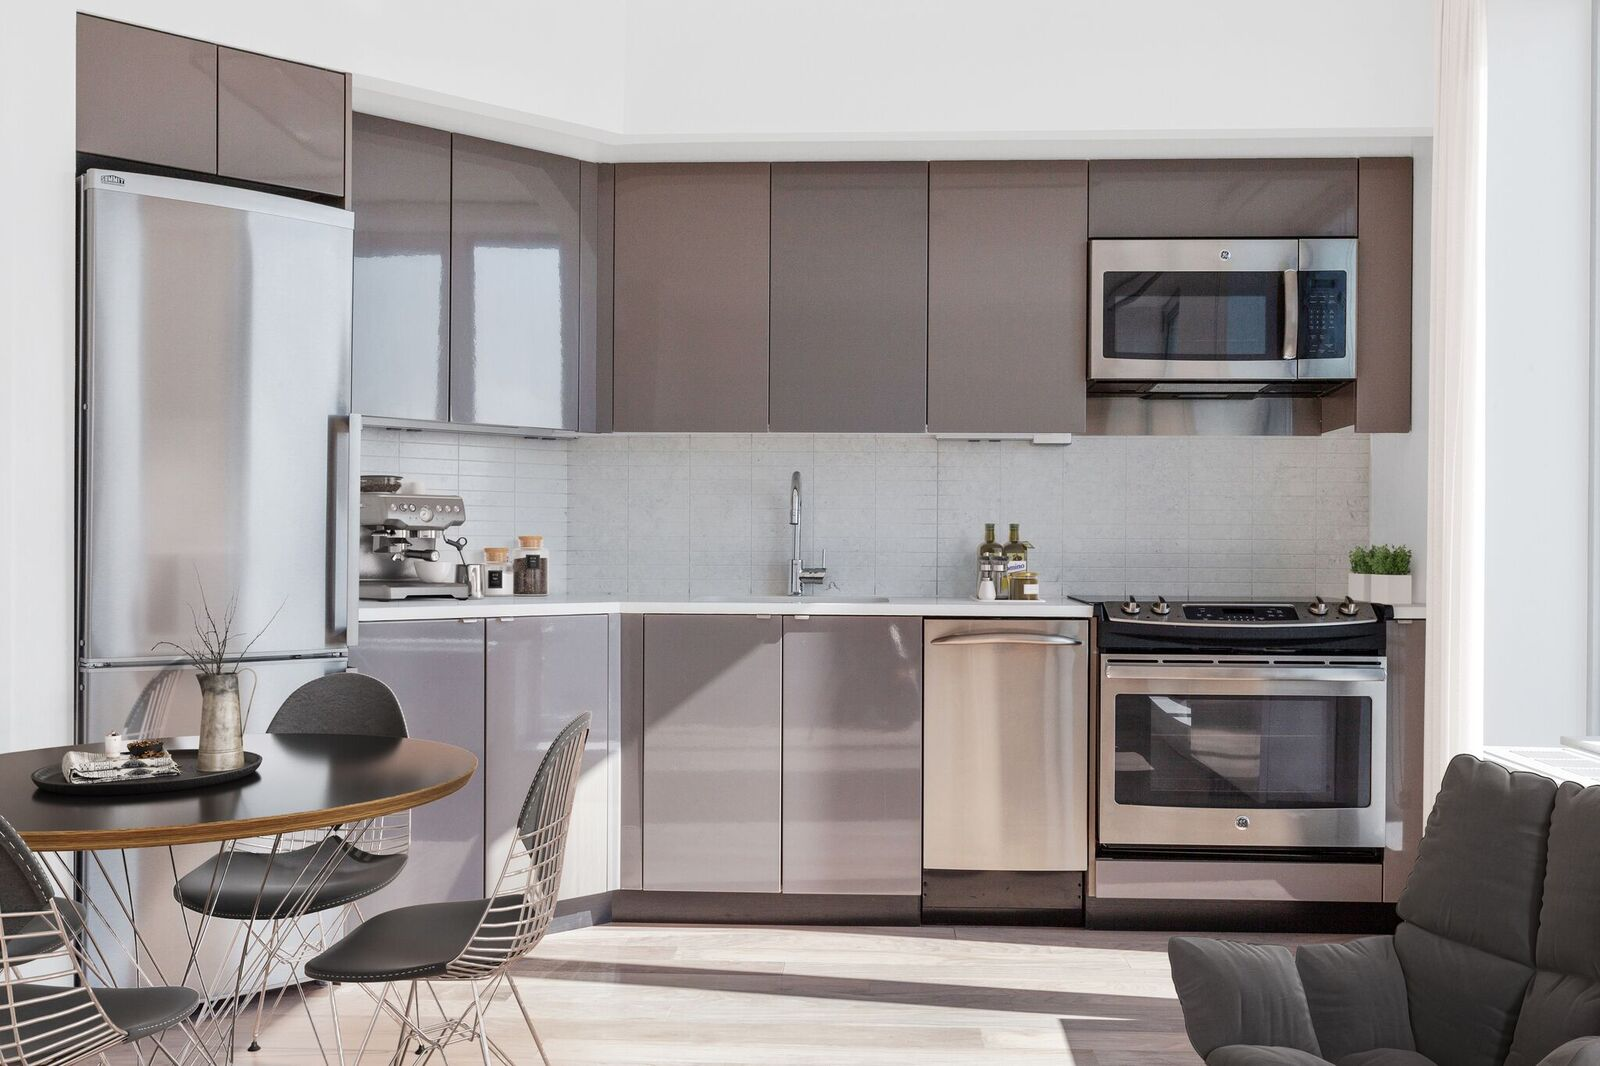 461 Dean Apartments include modern kitchens